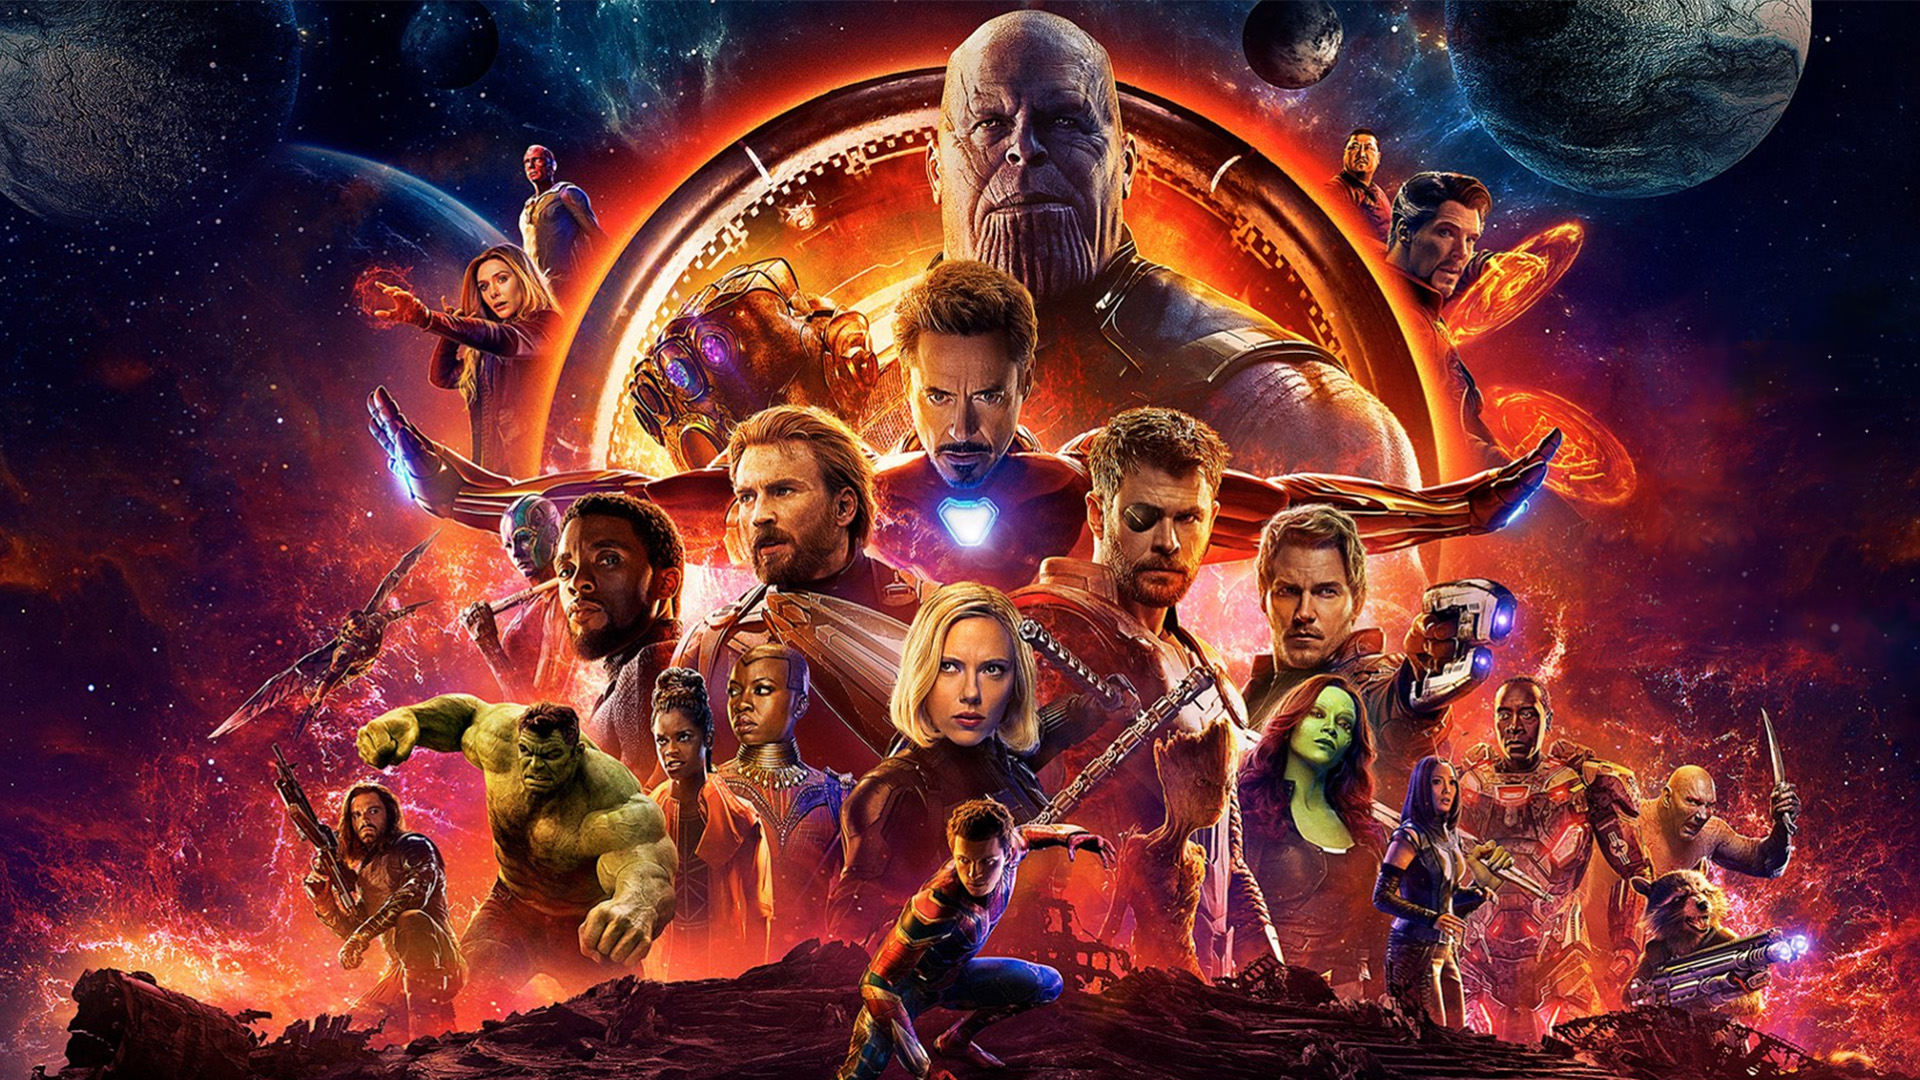 Avengers Infinity War Directors Ask Fans for Silence